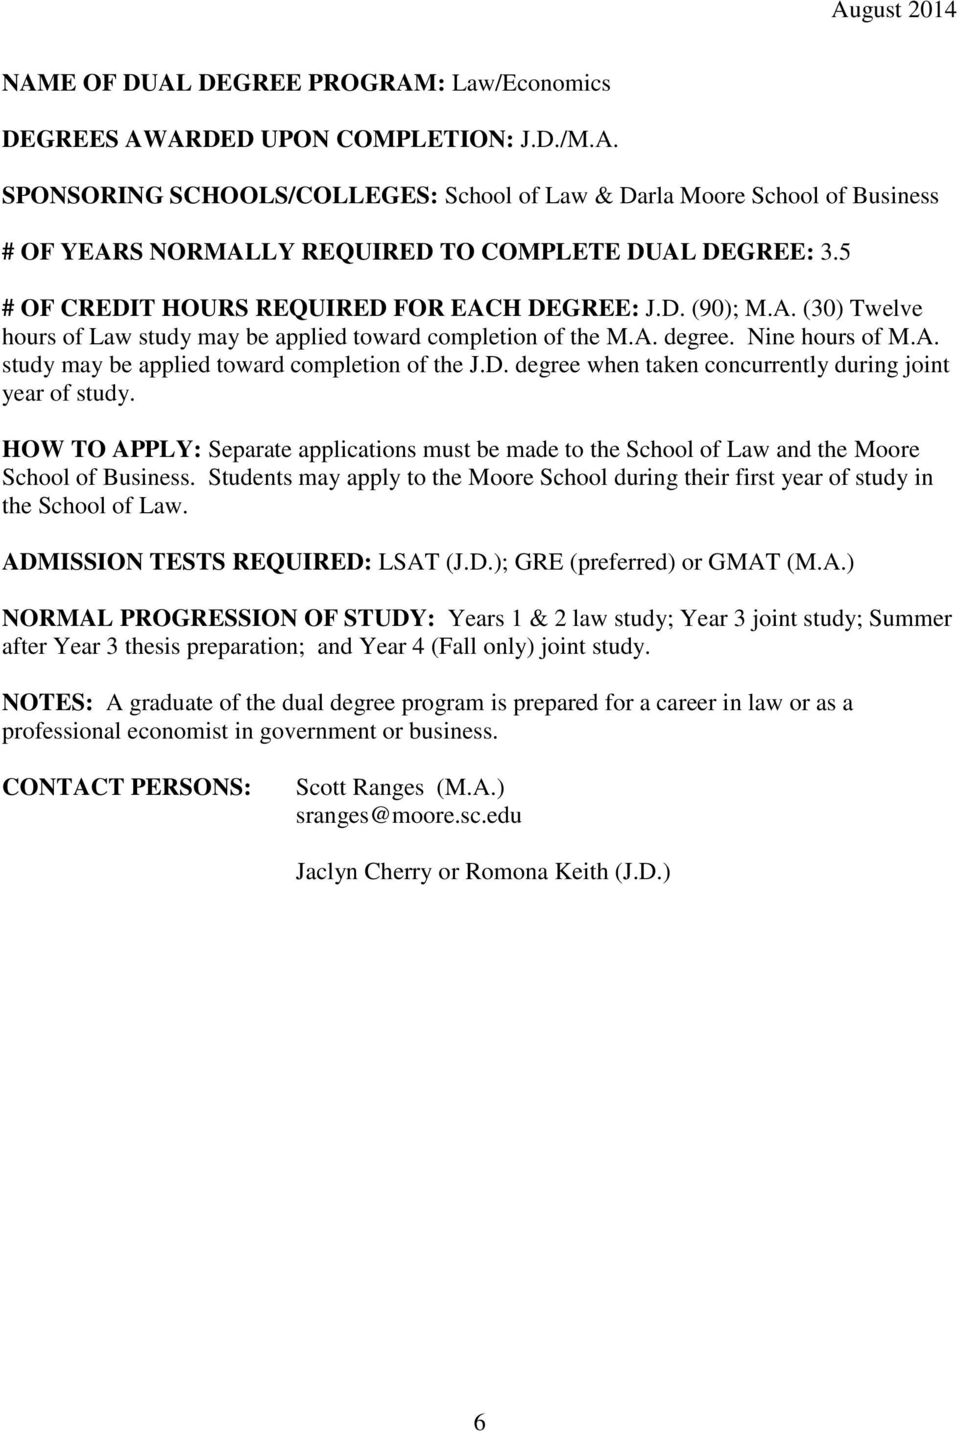 D. degree when taken concurrently during joint year of study. HOW TO APPLY: Separate applications must be made to the School of Law and the Moore School of Business.